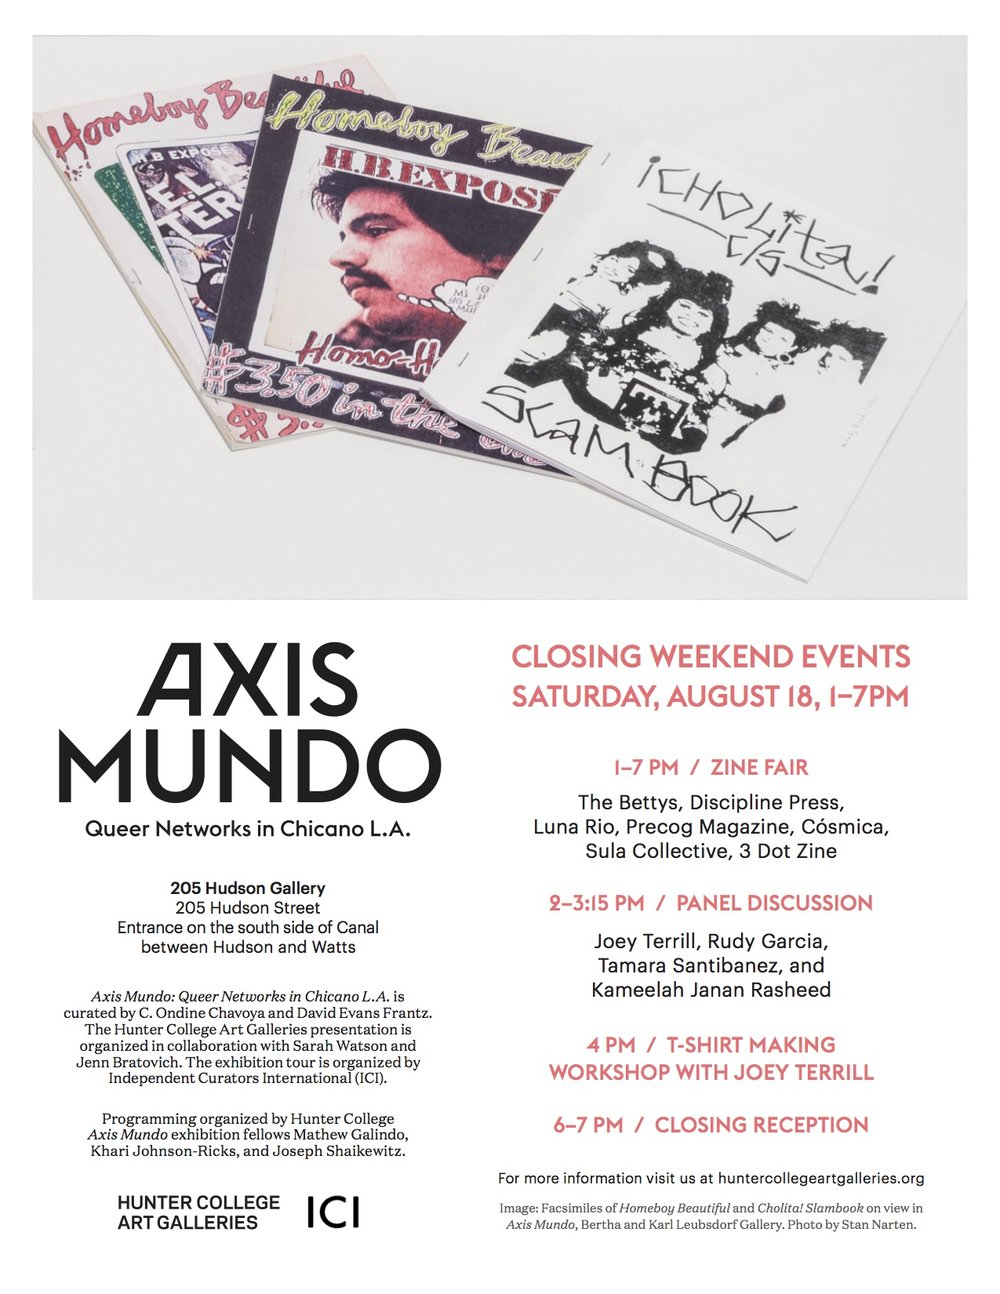 Axis Mundo Closing Weekend Events copy.jpg